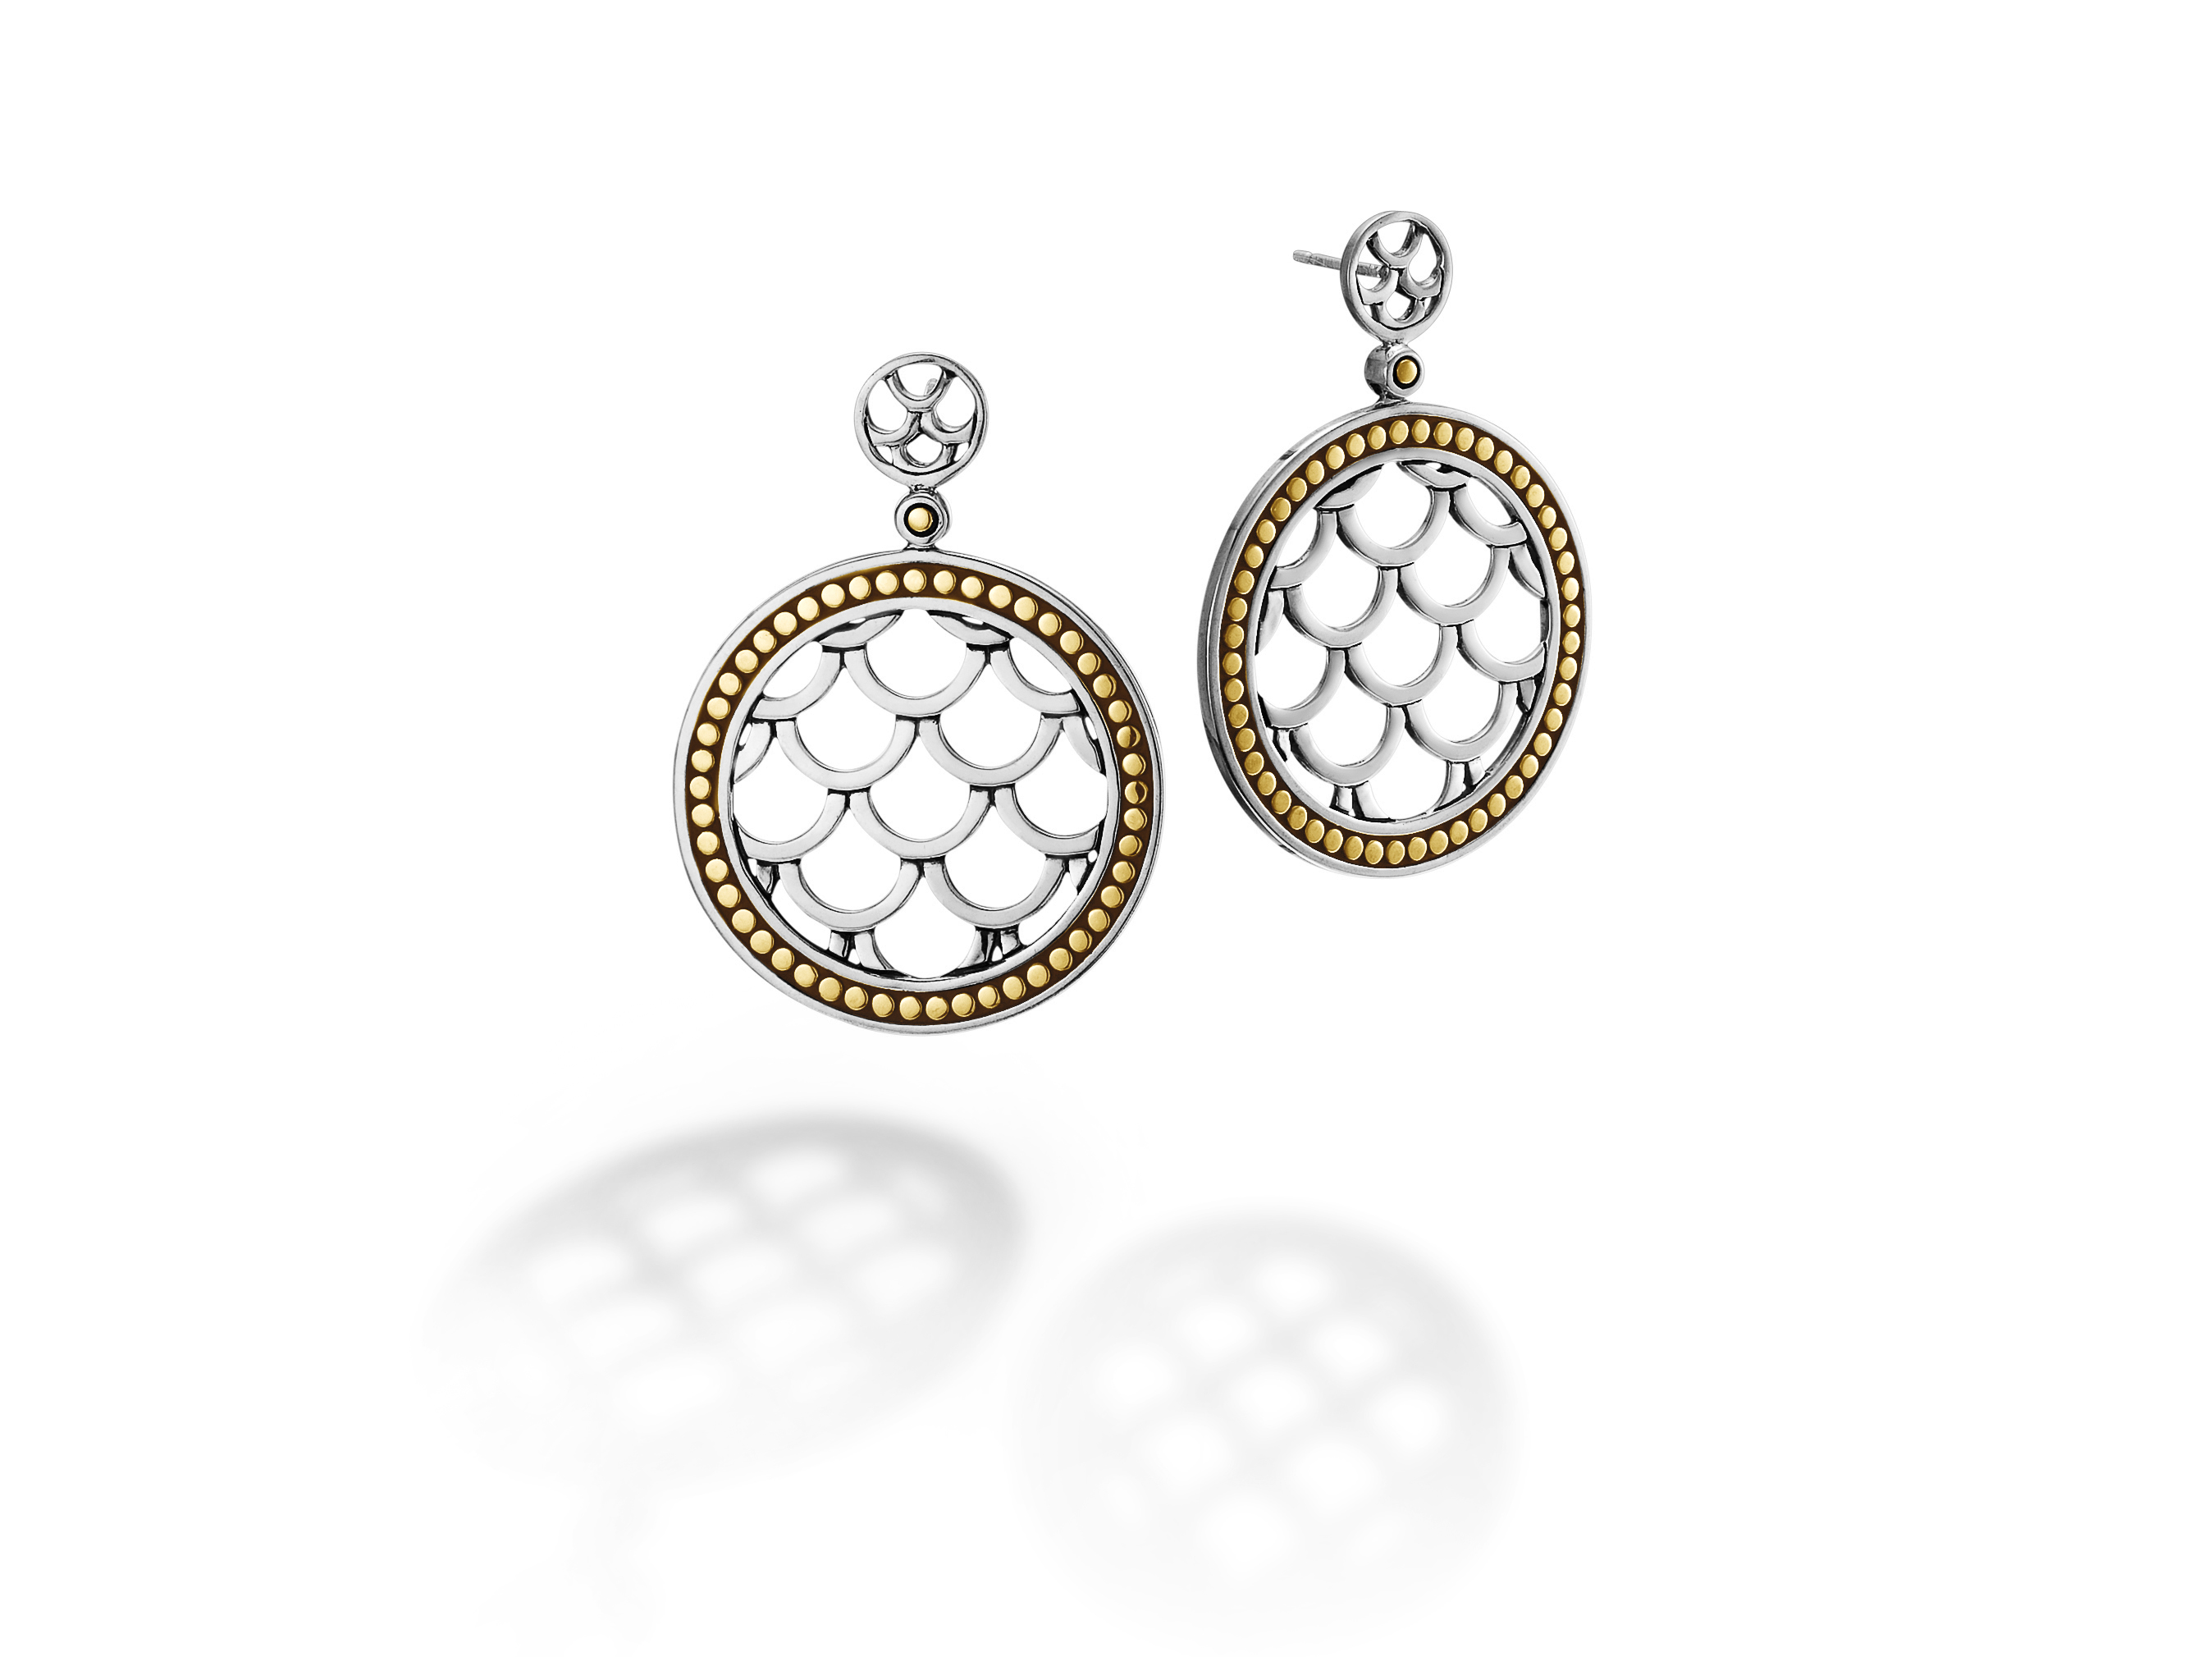 John Hardy Jewelry Celebrates The Year Of The Dragon With